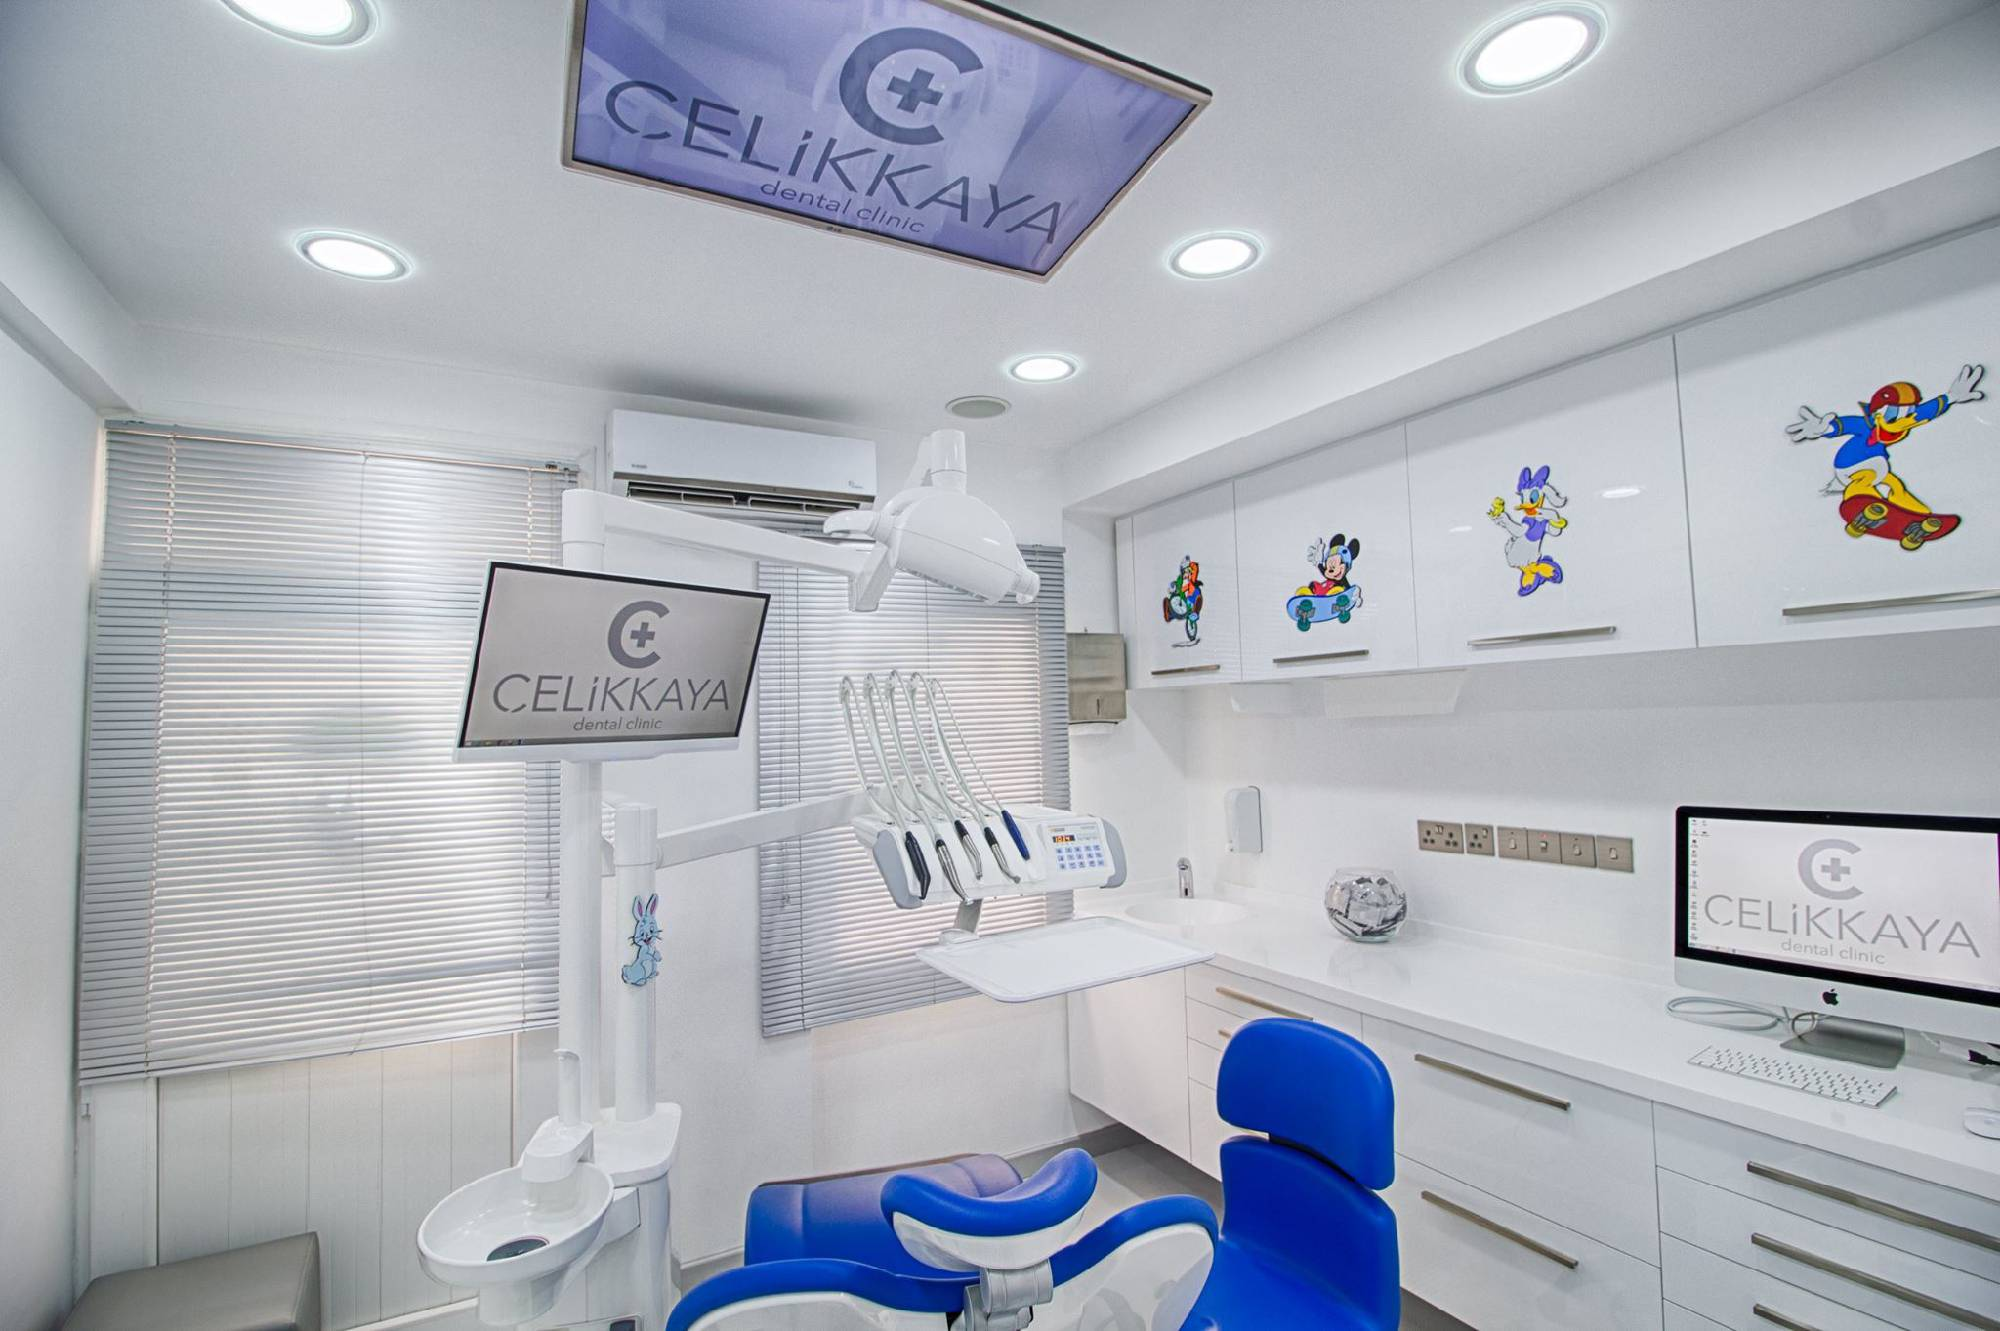 Celikkaya Dental Clinic has the latest technology